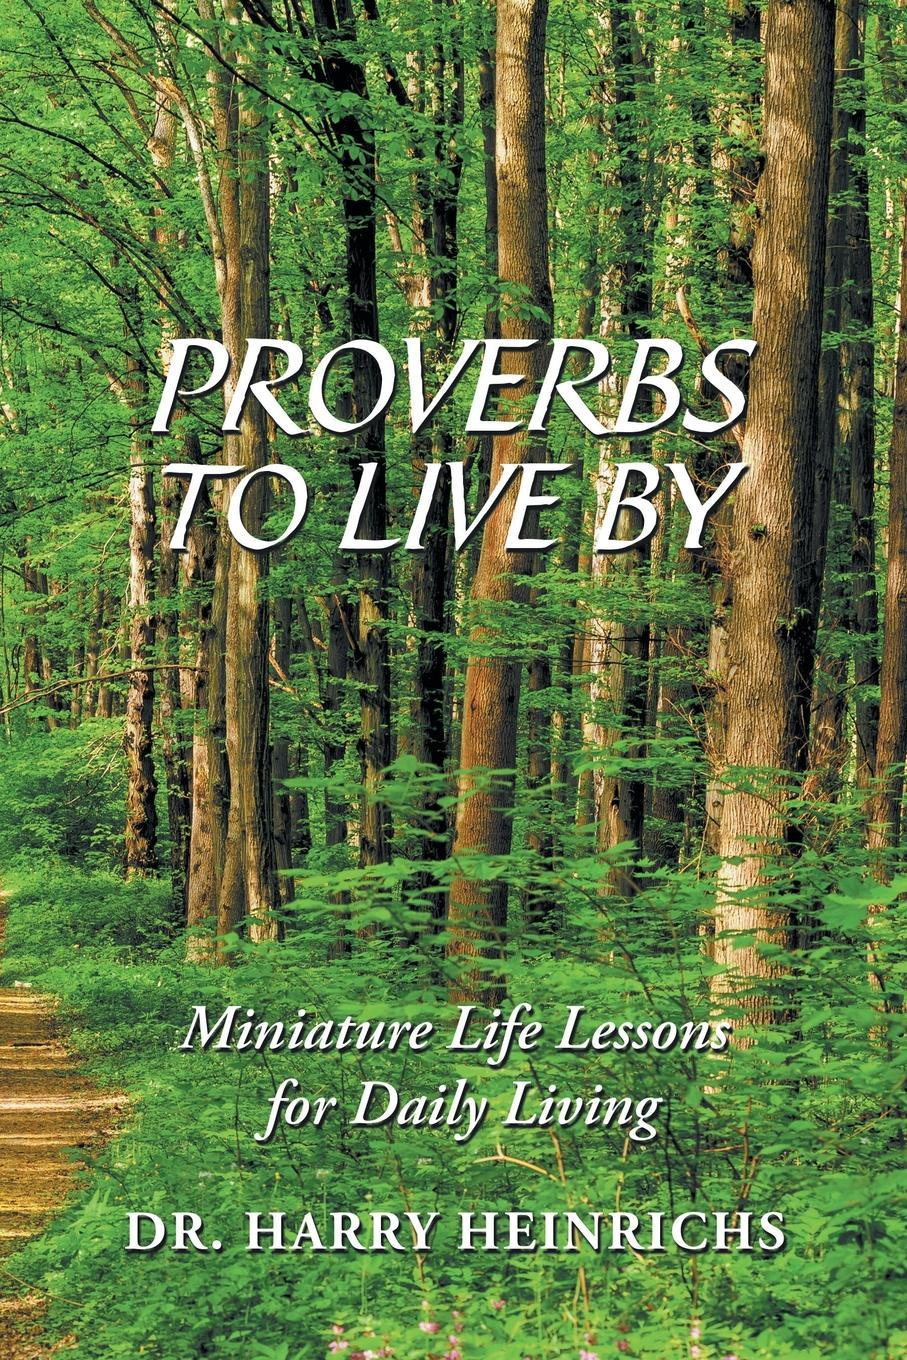 Dr. Harry Heinrichs Proverbs to Live By. Miniature Life Lessons for Daily Living poems to live by in troubling times